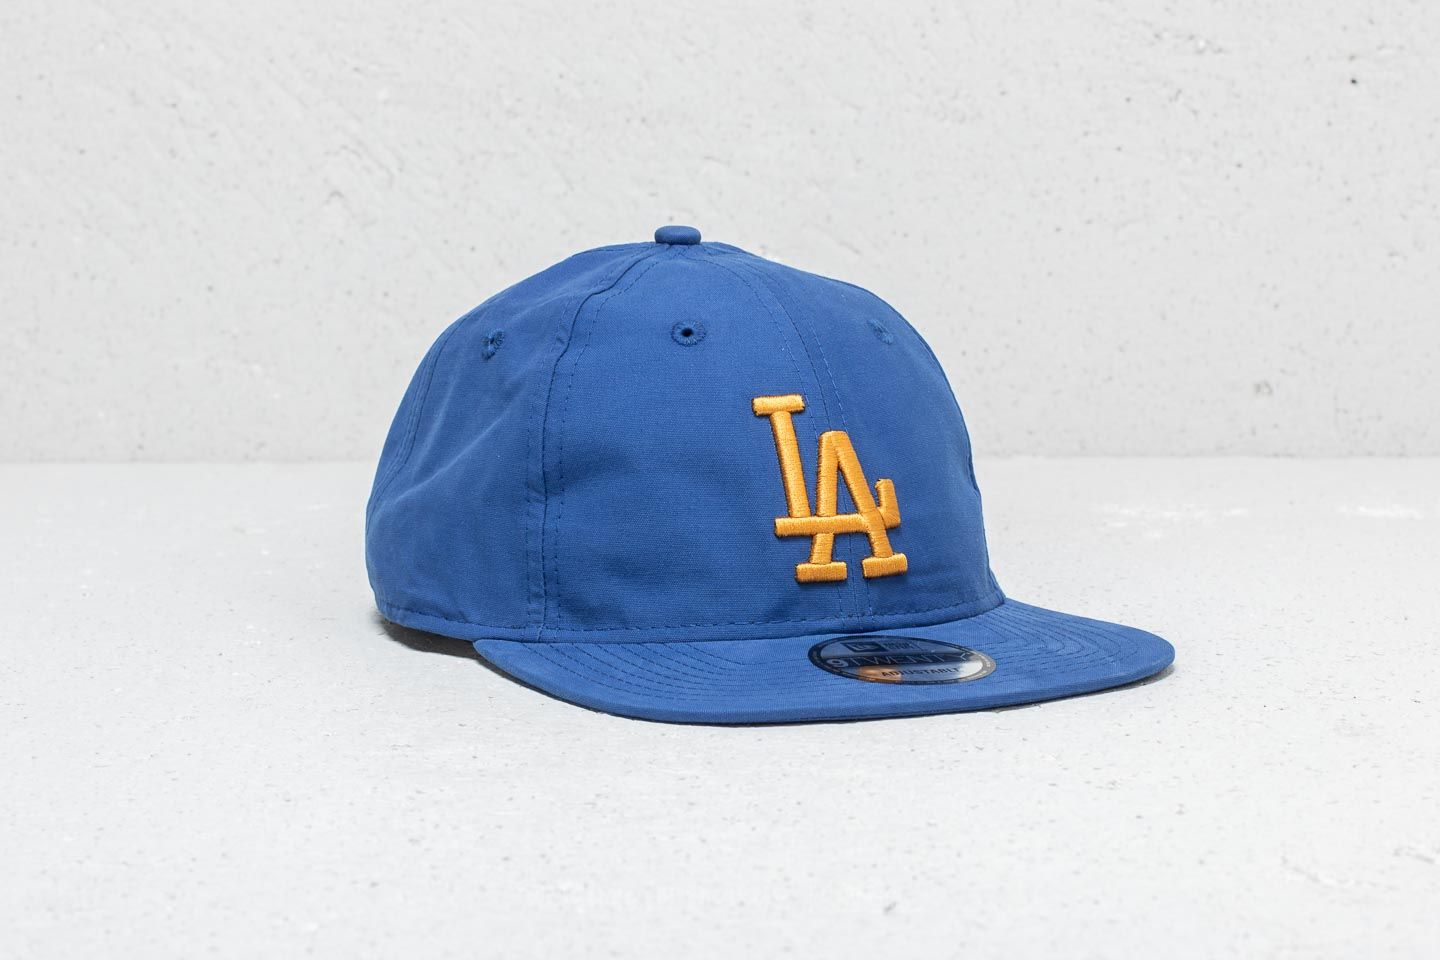 New Era 9Twenty Light Weight Packable Los Angeles Dodgers Cap Blue za skvělou cenu 459 Kč koupíte na Footshop.cz